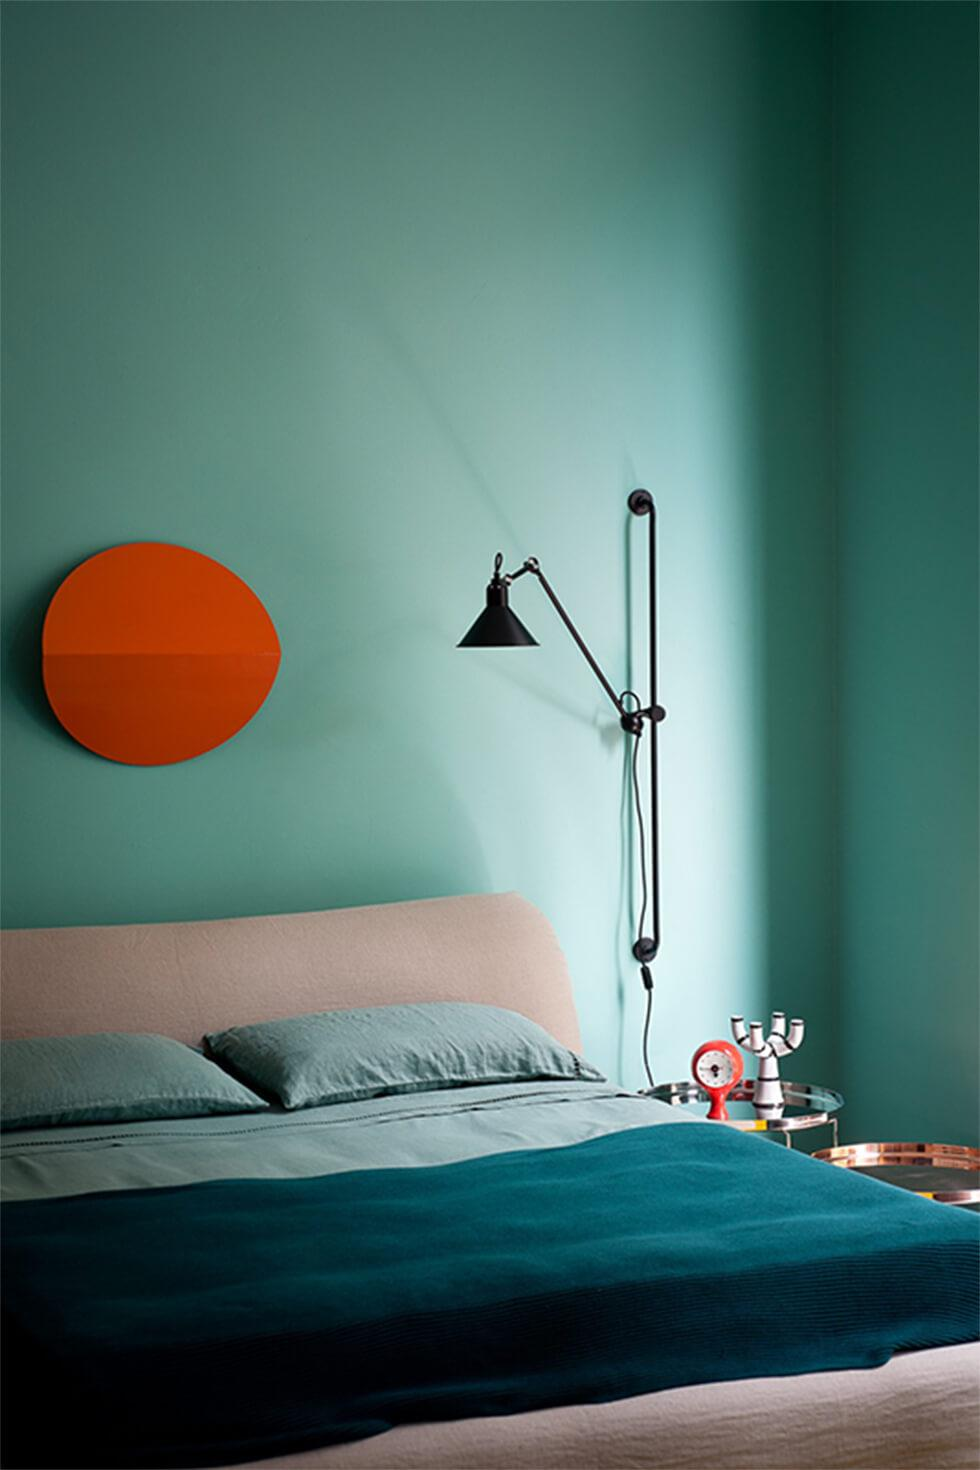 Teal bedroom with contrasting circular orange wall art and teal bedding